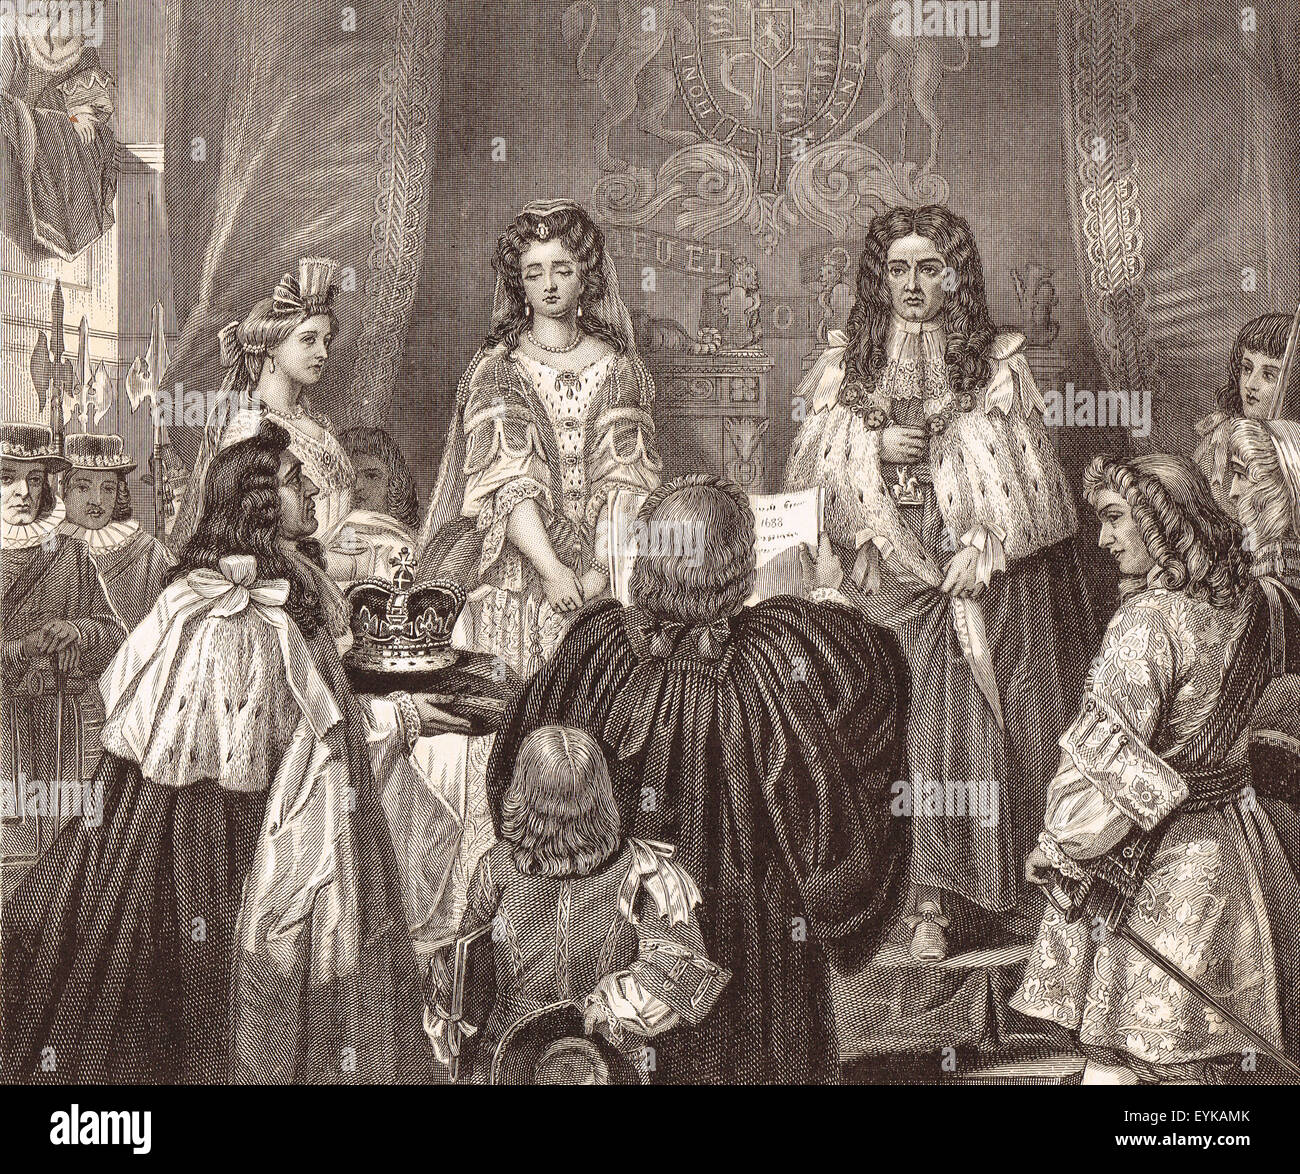 William of Orange & Mary offered the Crown 1689